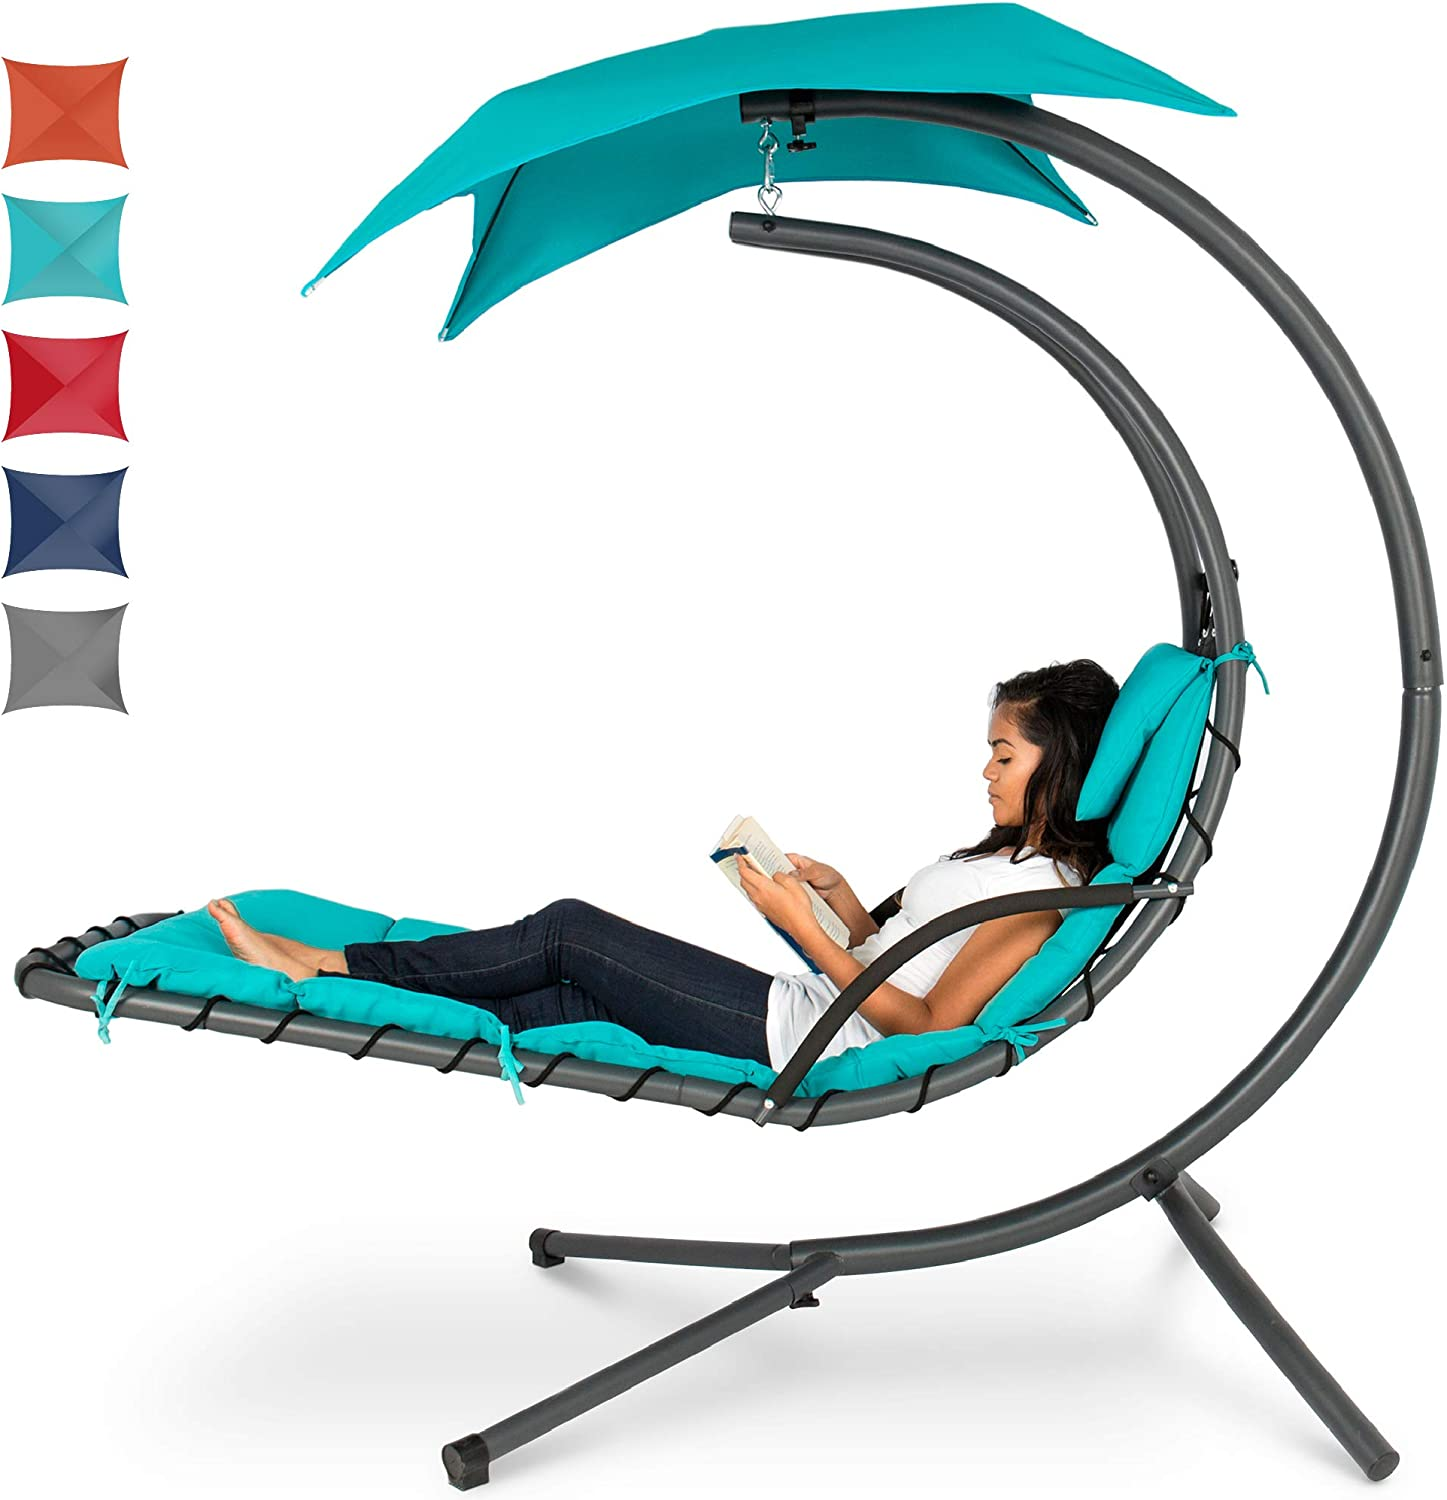 Best Choice Products Outdoor Hanging Curved Steel Chaise Lounge Chair Swing w/Built-in Pillow and Removable Canopy, Teal: Garden & Outdoor